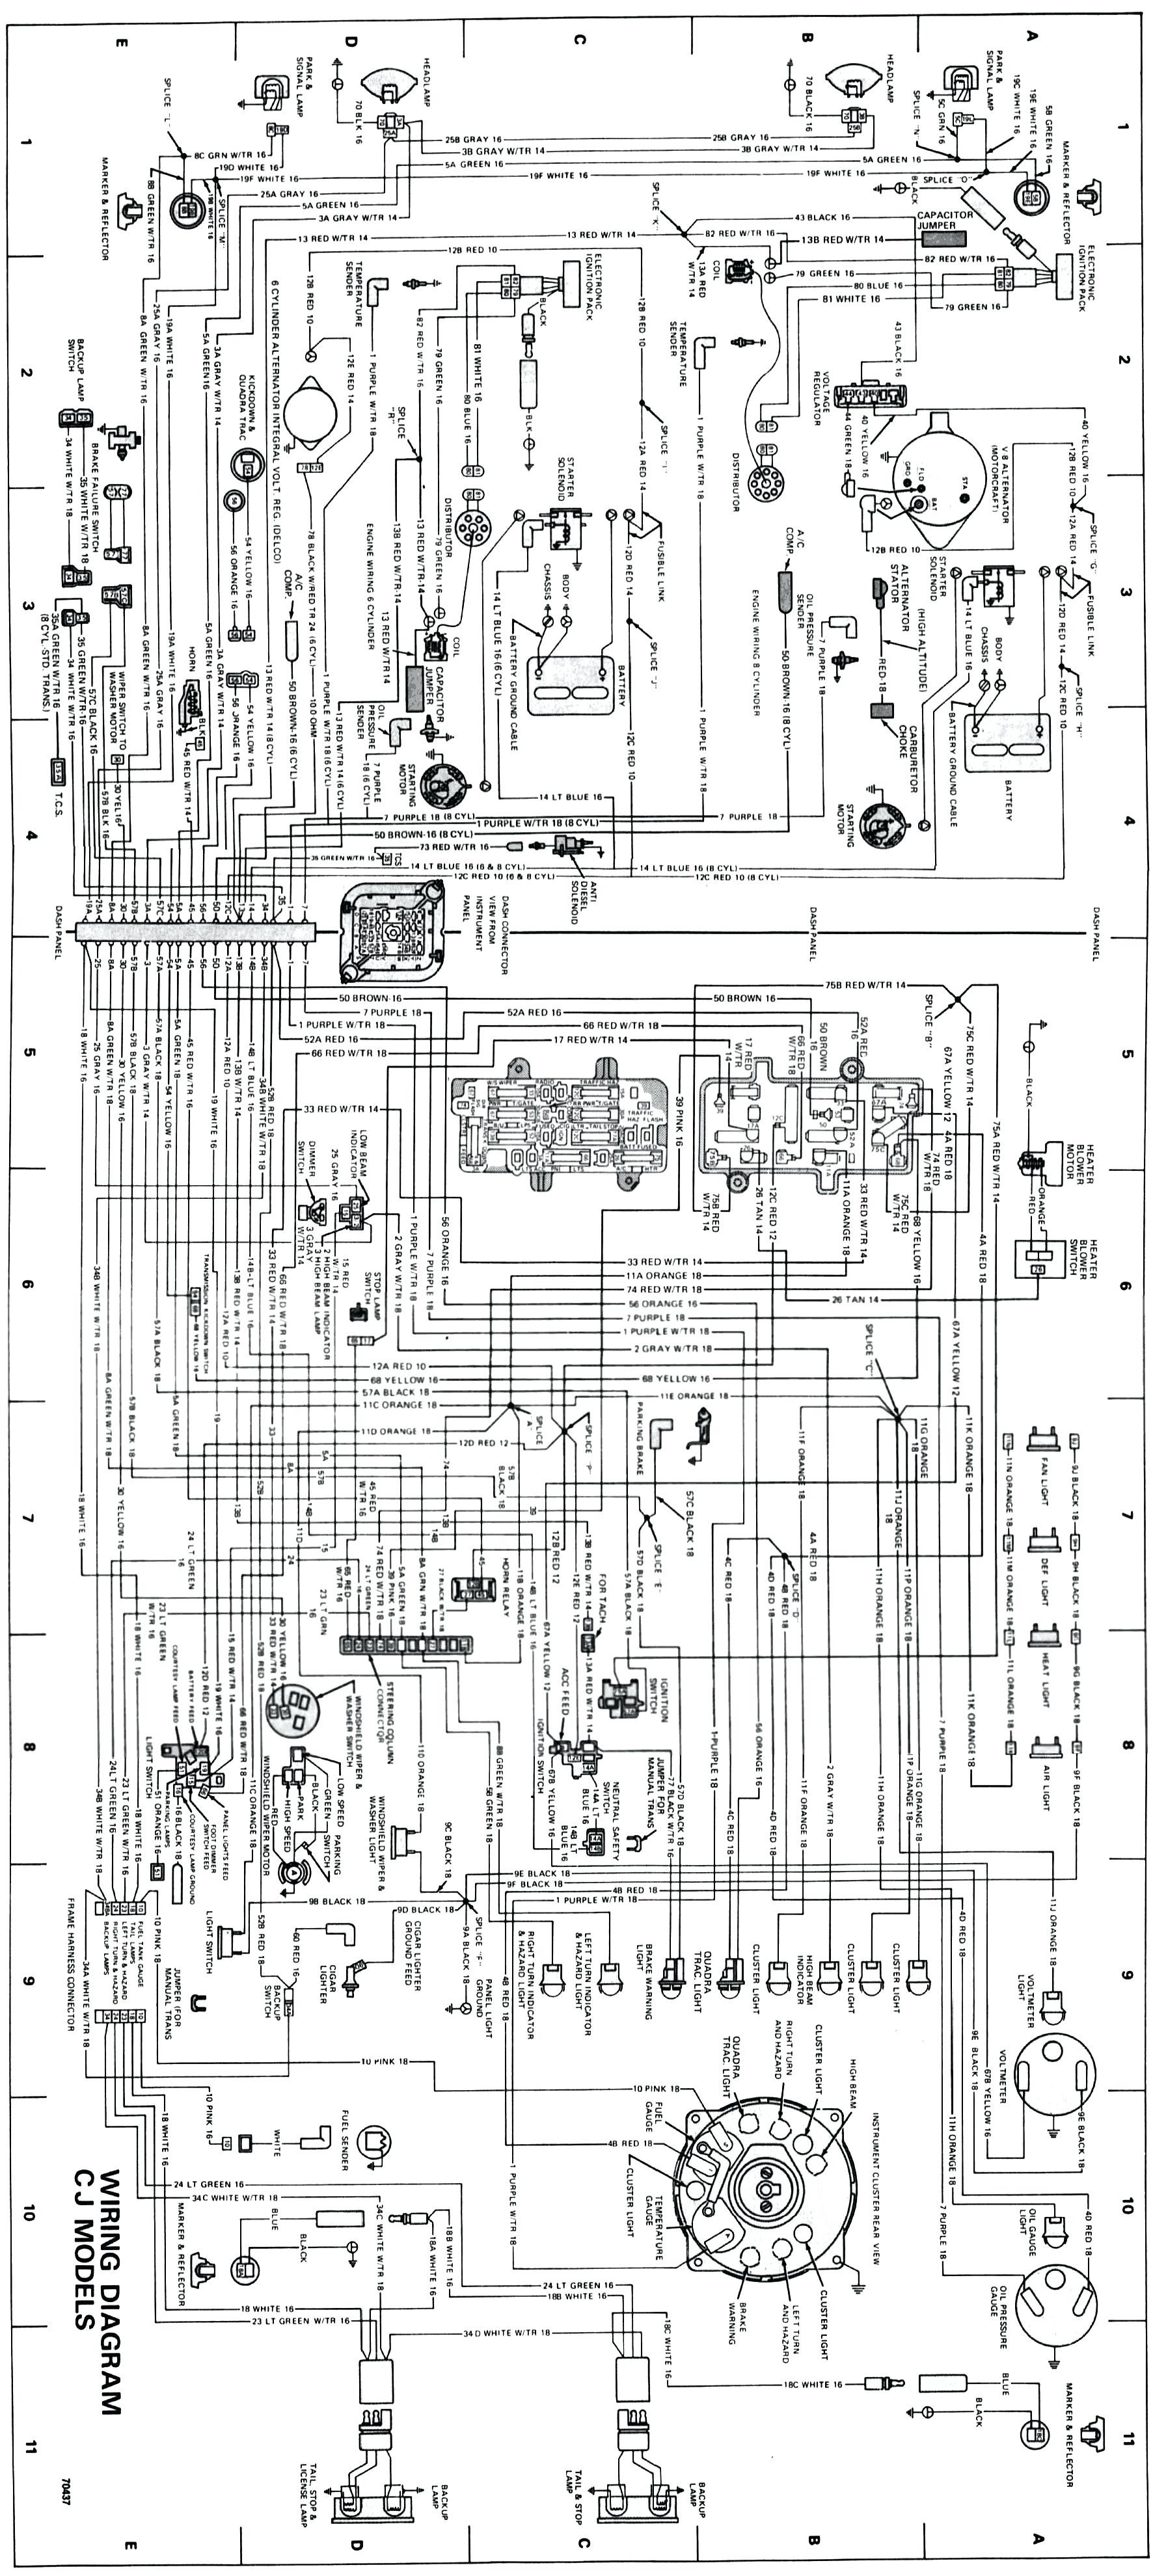 Jeep Cj7 Starter Wiring Diagram Schematics 1974 Cj5 External Regulator 1982 Harness Voltage